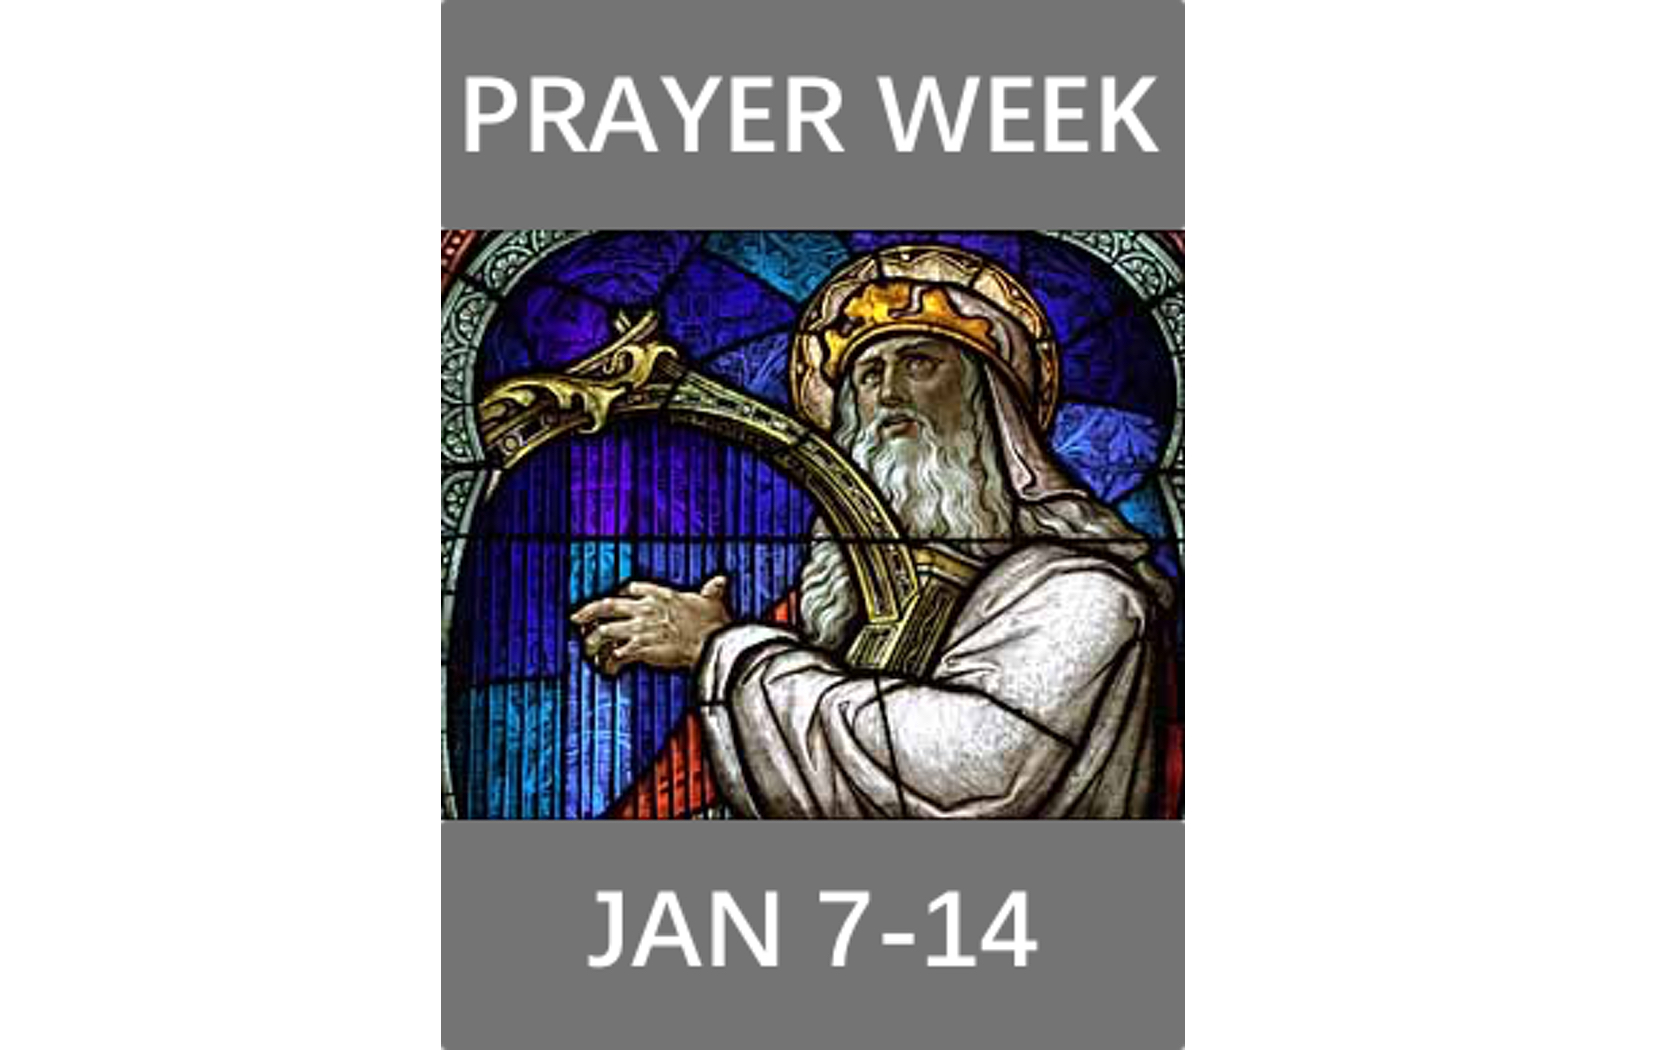 This year for prayer week, we will be praying through the Psalms. Pastor Rick will be starting off prayer week by preaching about how we can pray through the Psalms. Be sure to check out our social media pages each day next week, so you can join us in prayer.